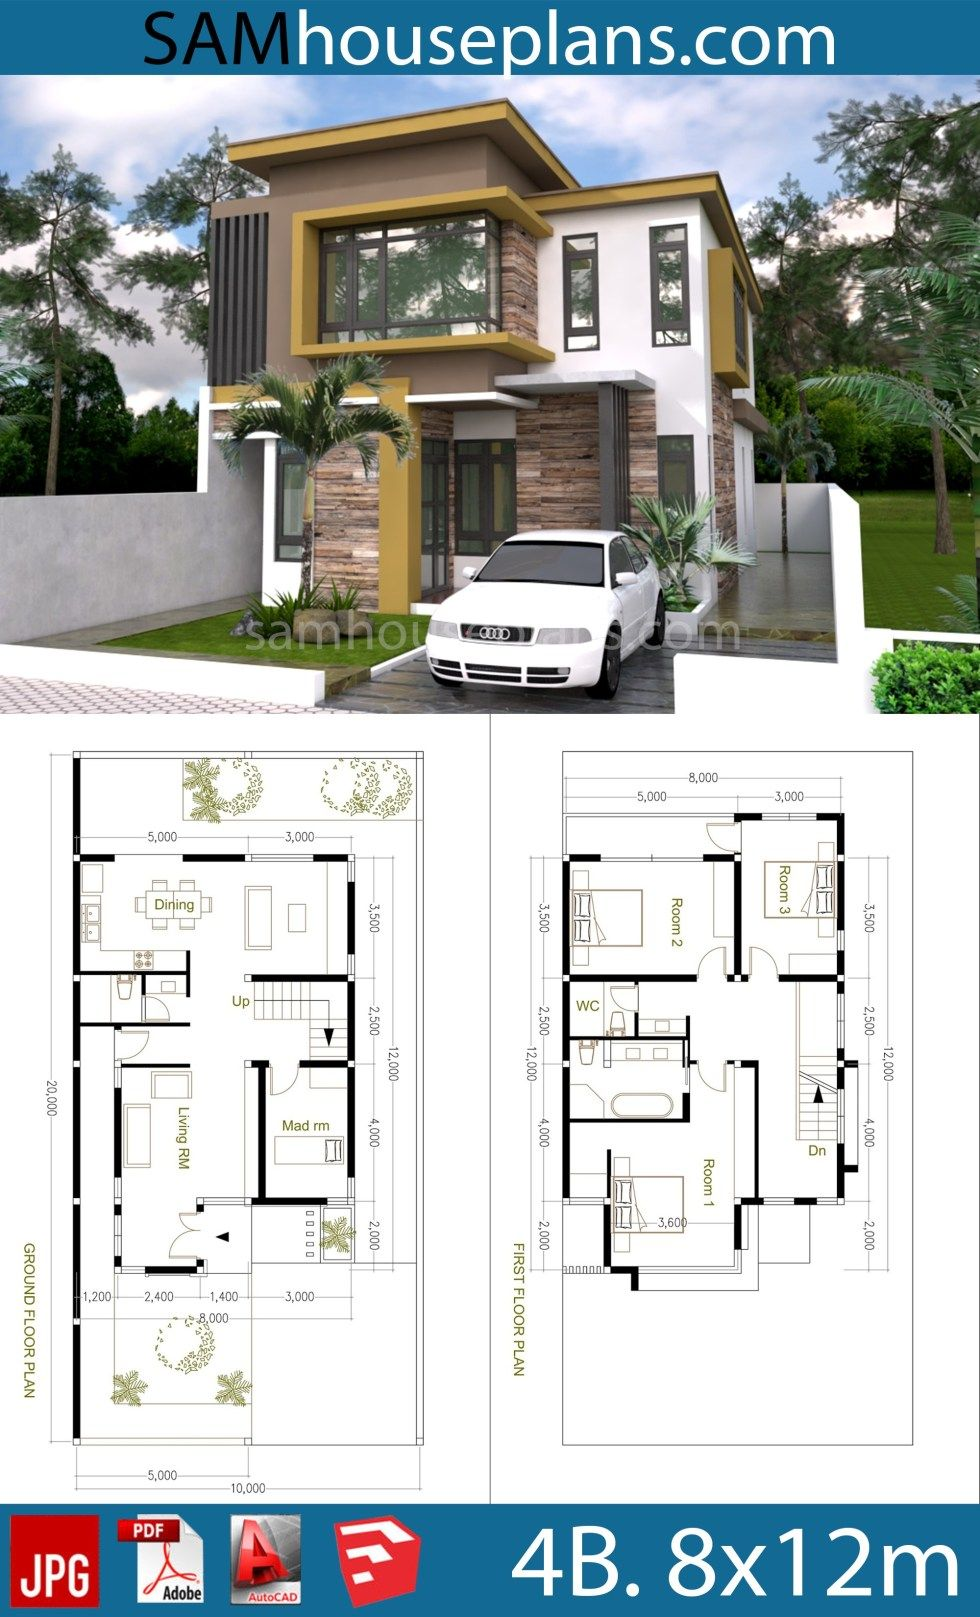 House Plans 8x12m With 4 Bedrooms Sam House Plans 2 Storey House Design Building Plans House Architectural House Plans